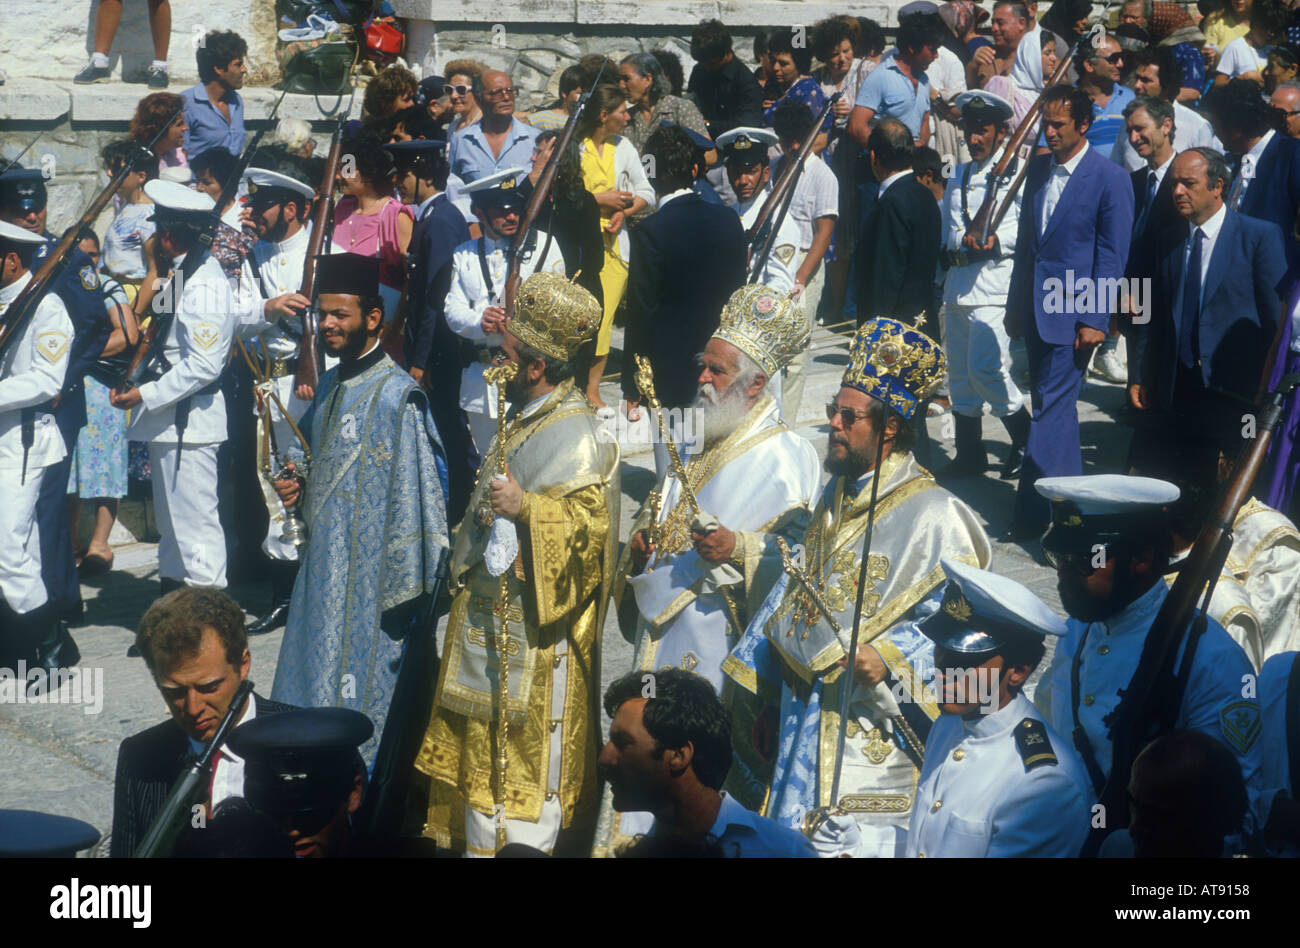 popes in colorful vestments staircase of th church in Tinos feast of Panagia pilgrimage cyclades Greece Stock Photo